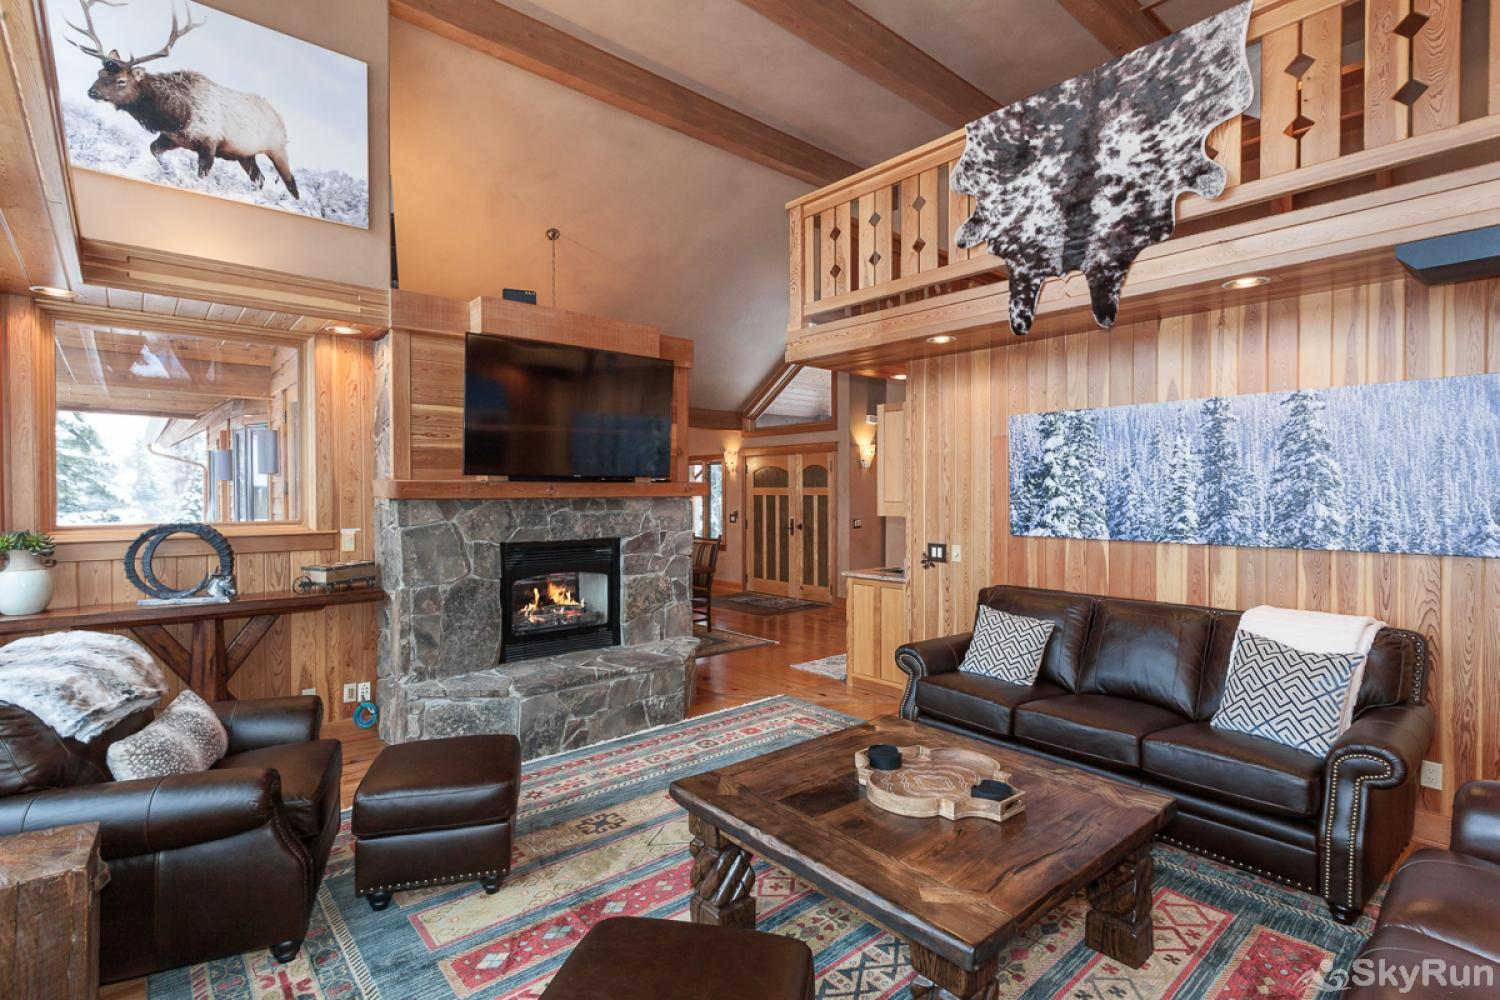 Highland Huckleberry Lodge Brand new furniture and decor throughout